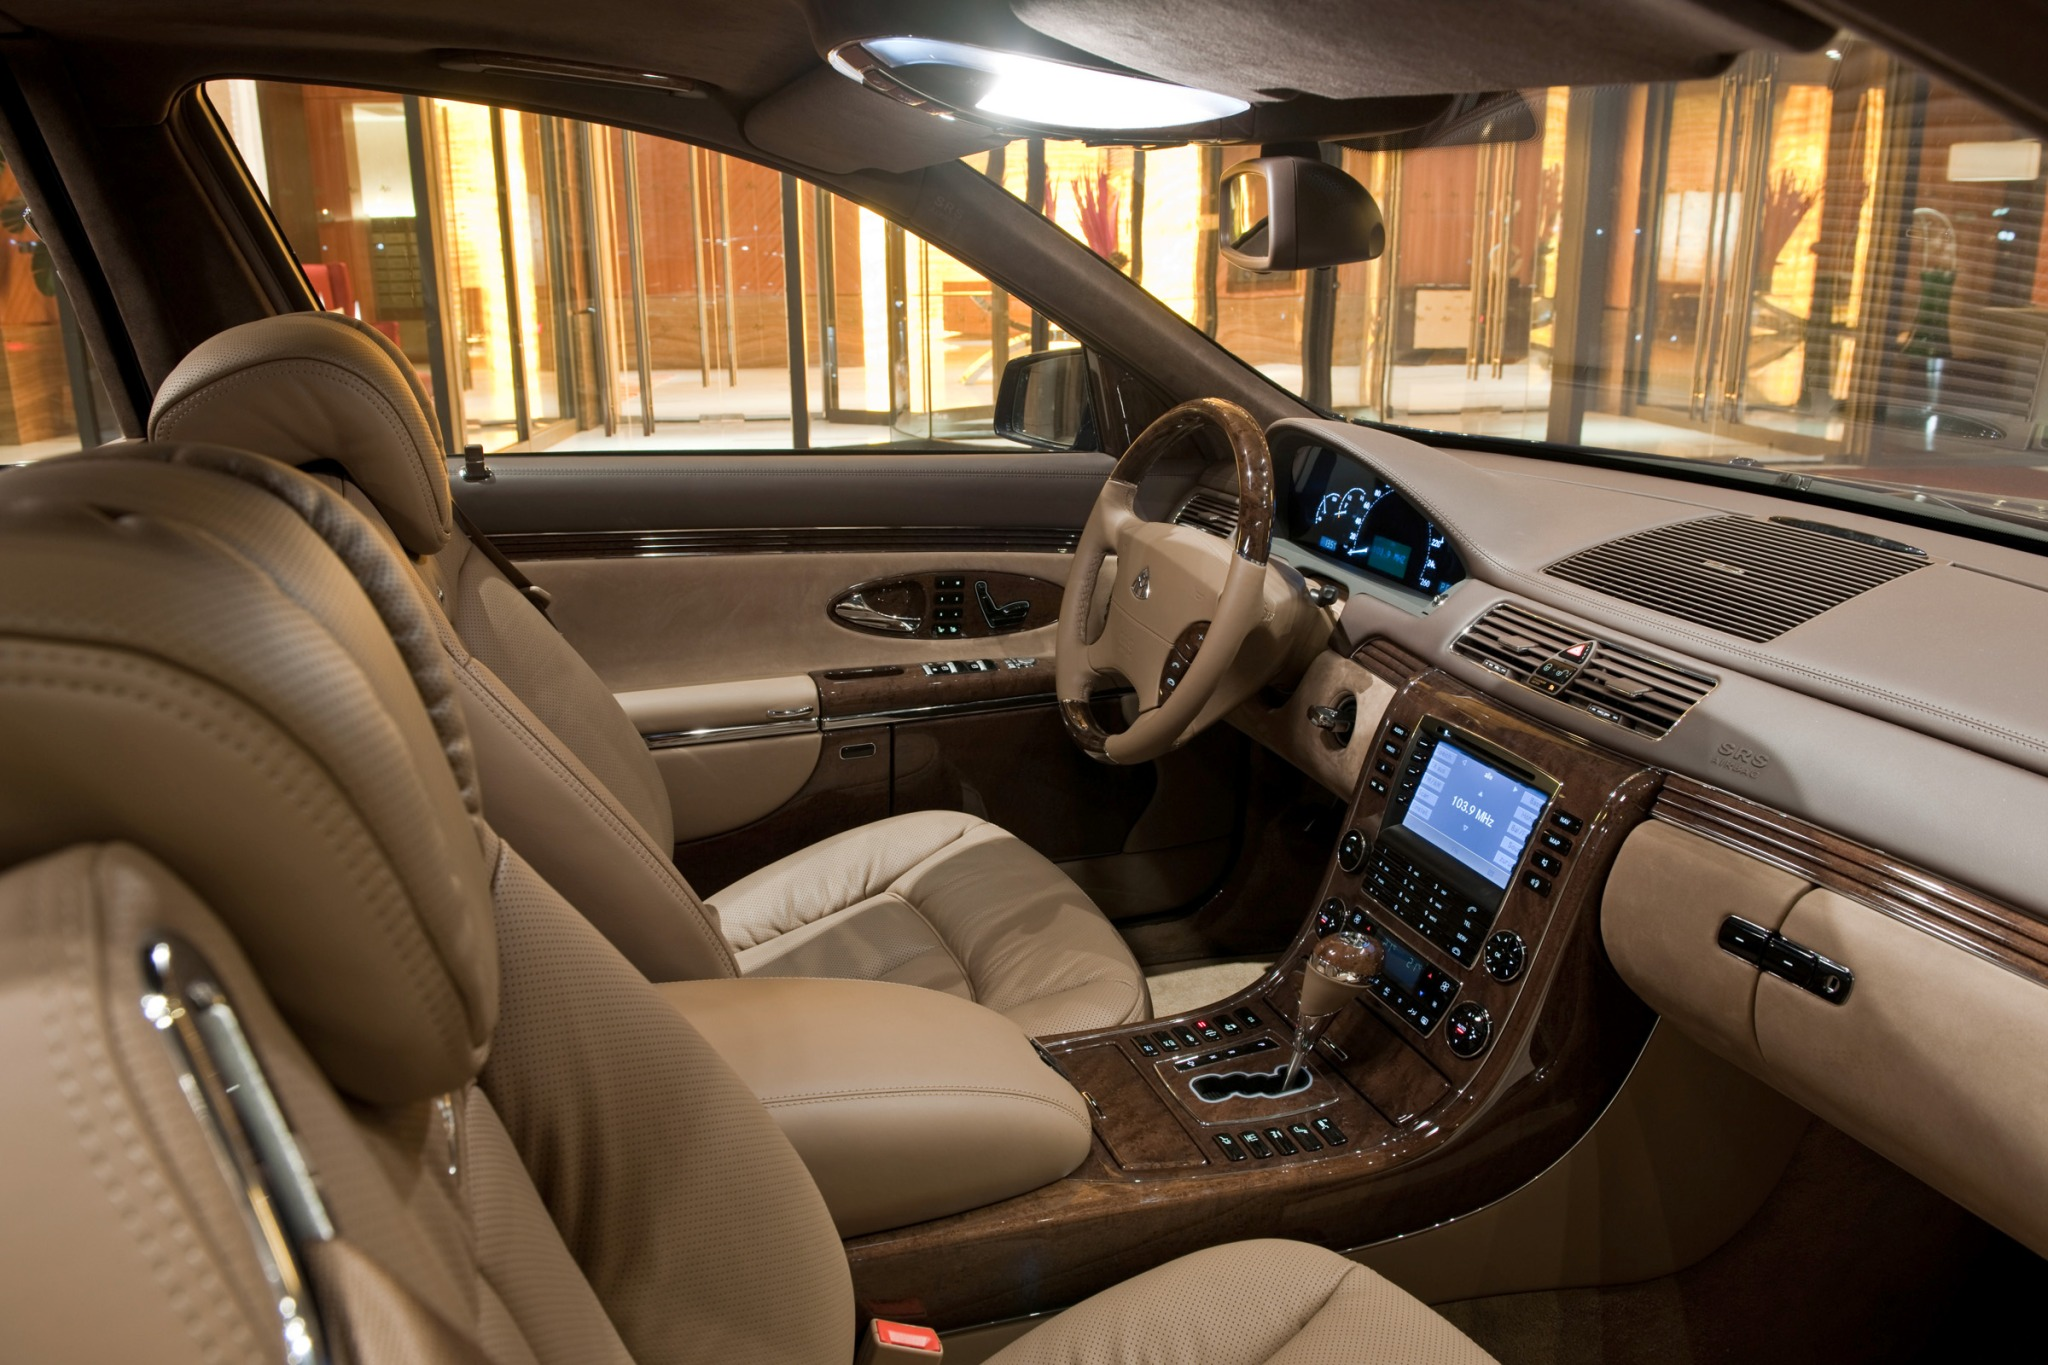 2012 Maybach 62 Sedan Rea interior #6